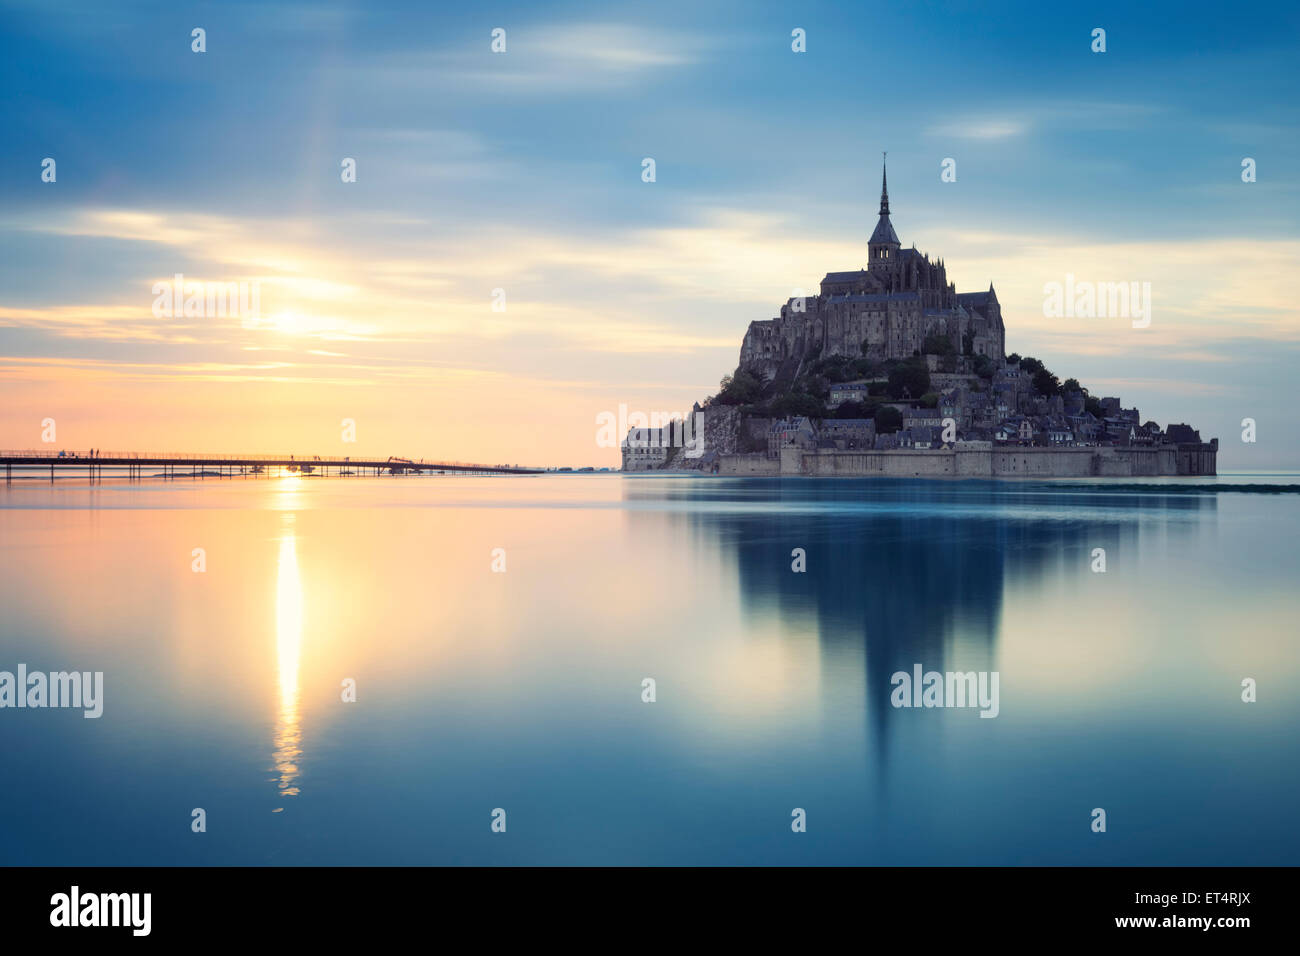 Mont-Saint-Michel at sunset, France, Europe. - Stock Image